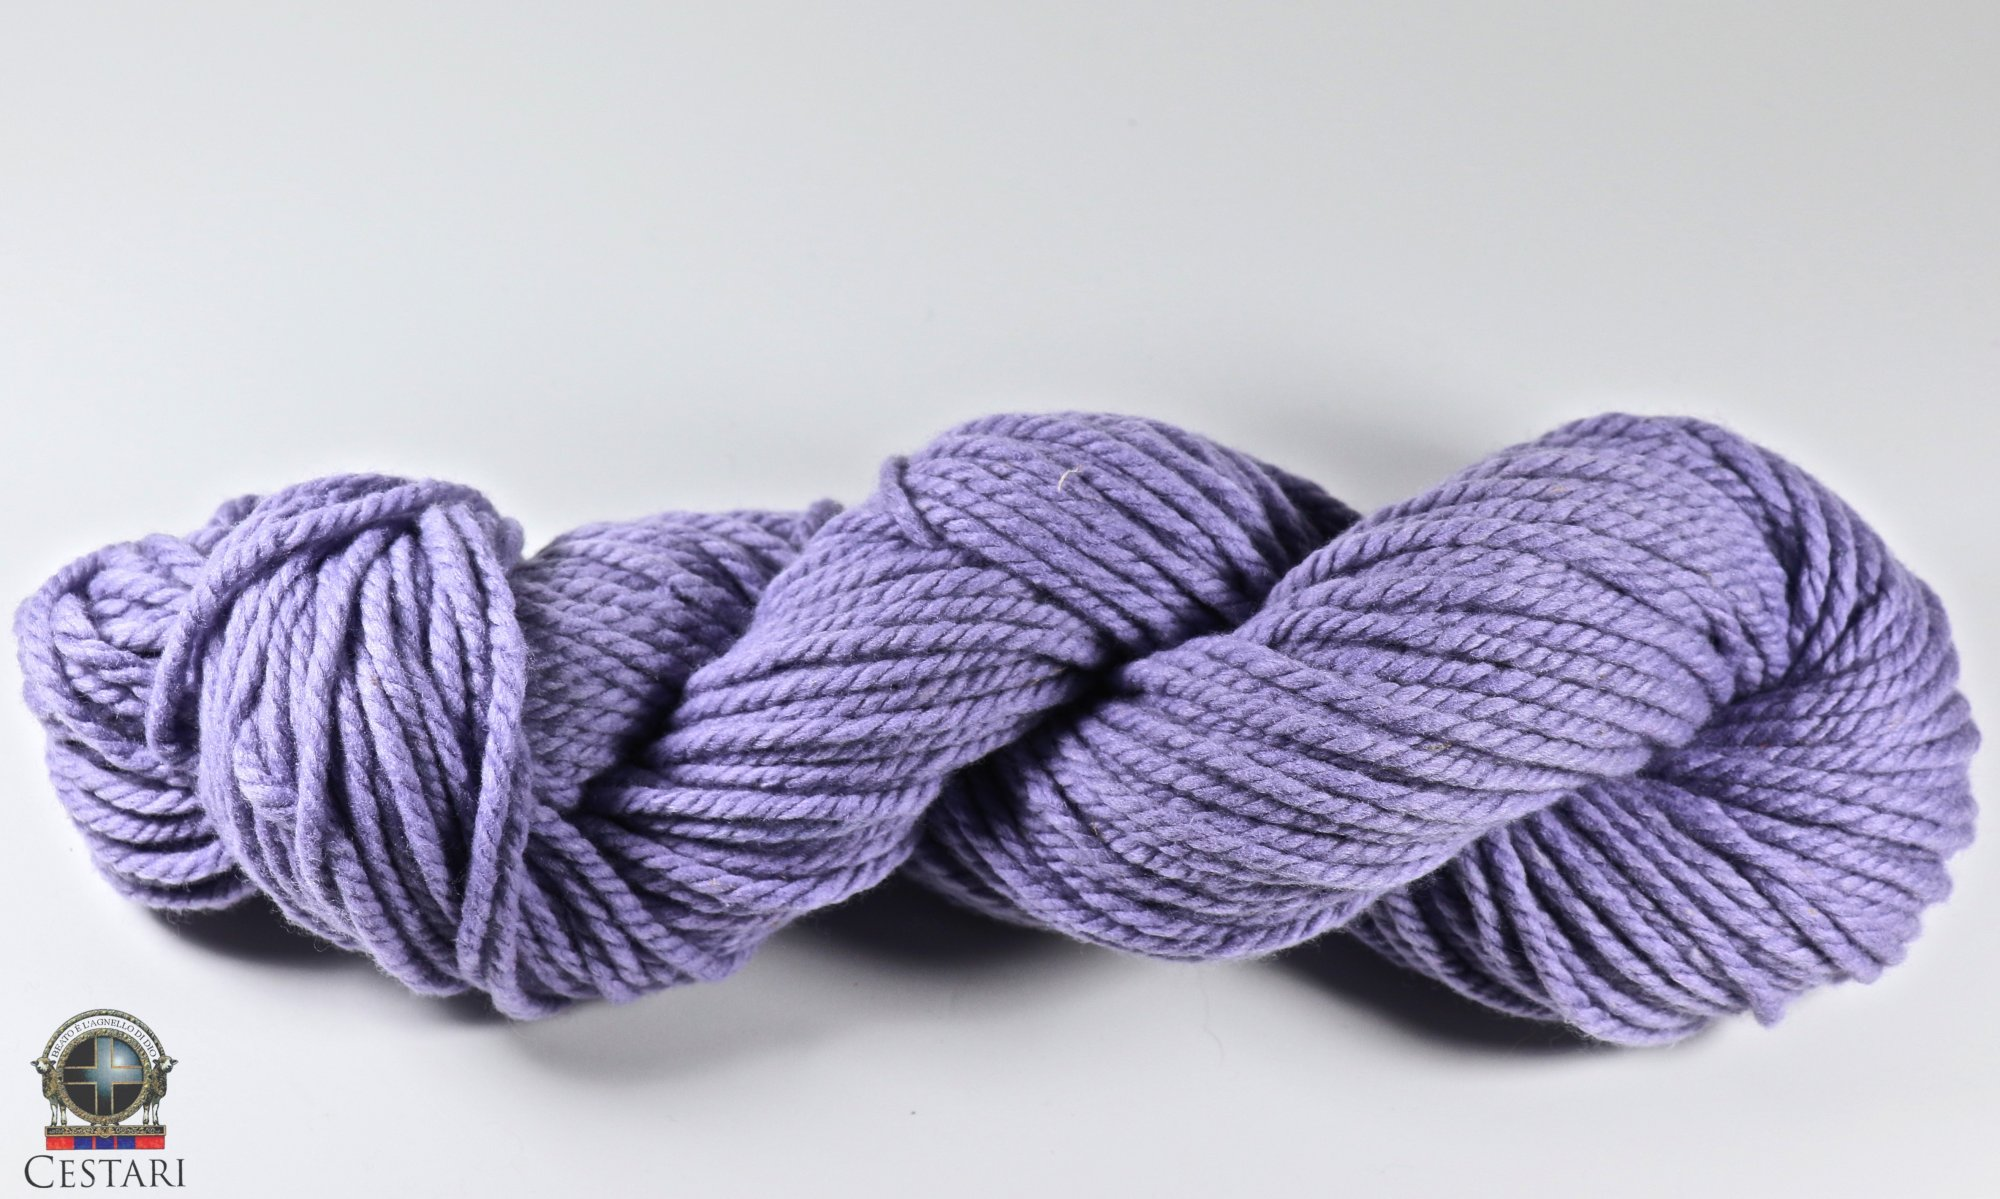 Cestari Mt. Vernon Dusty Orchid Worsted Yarn